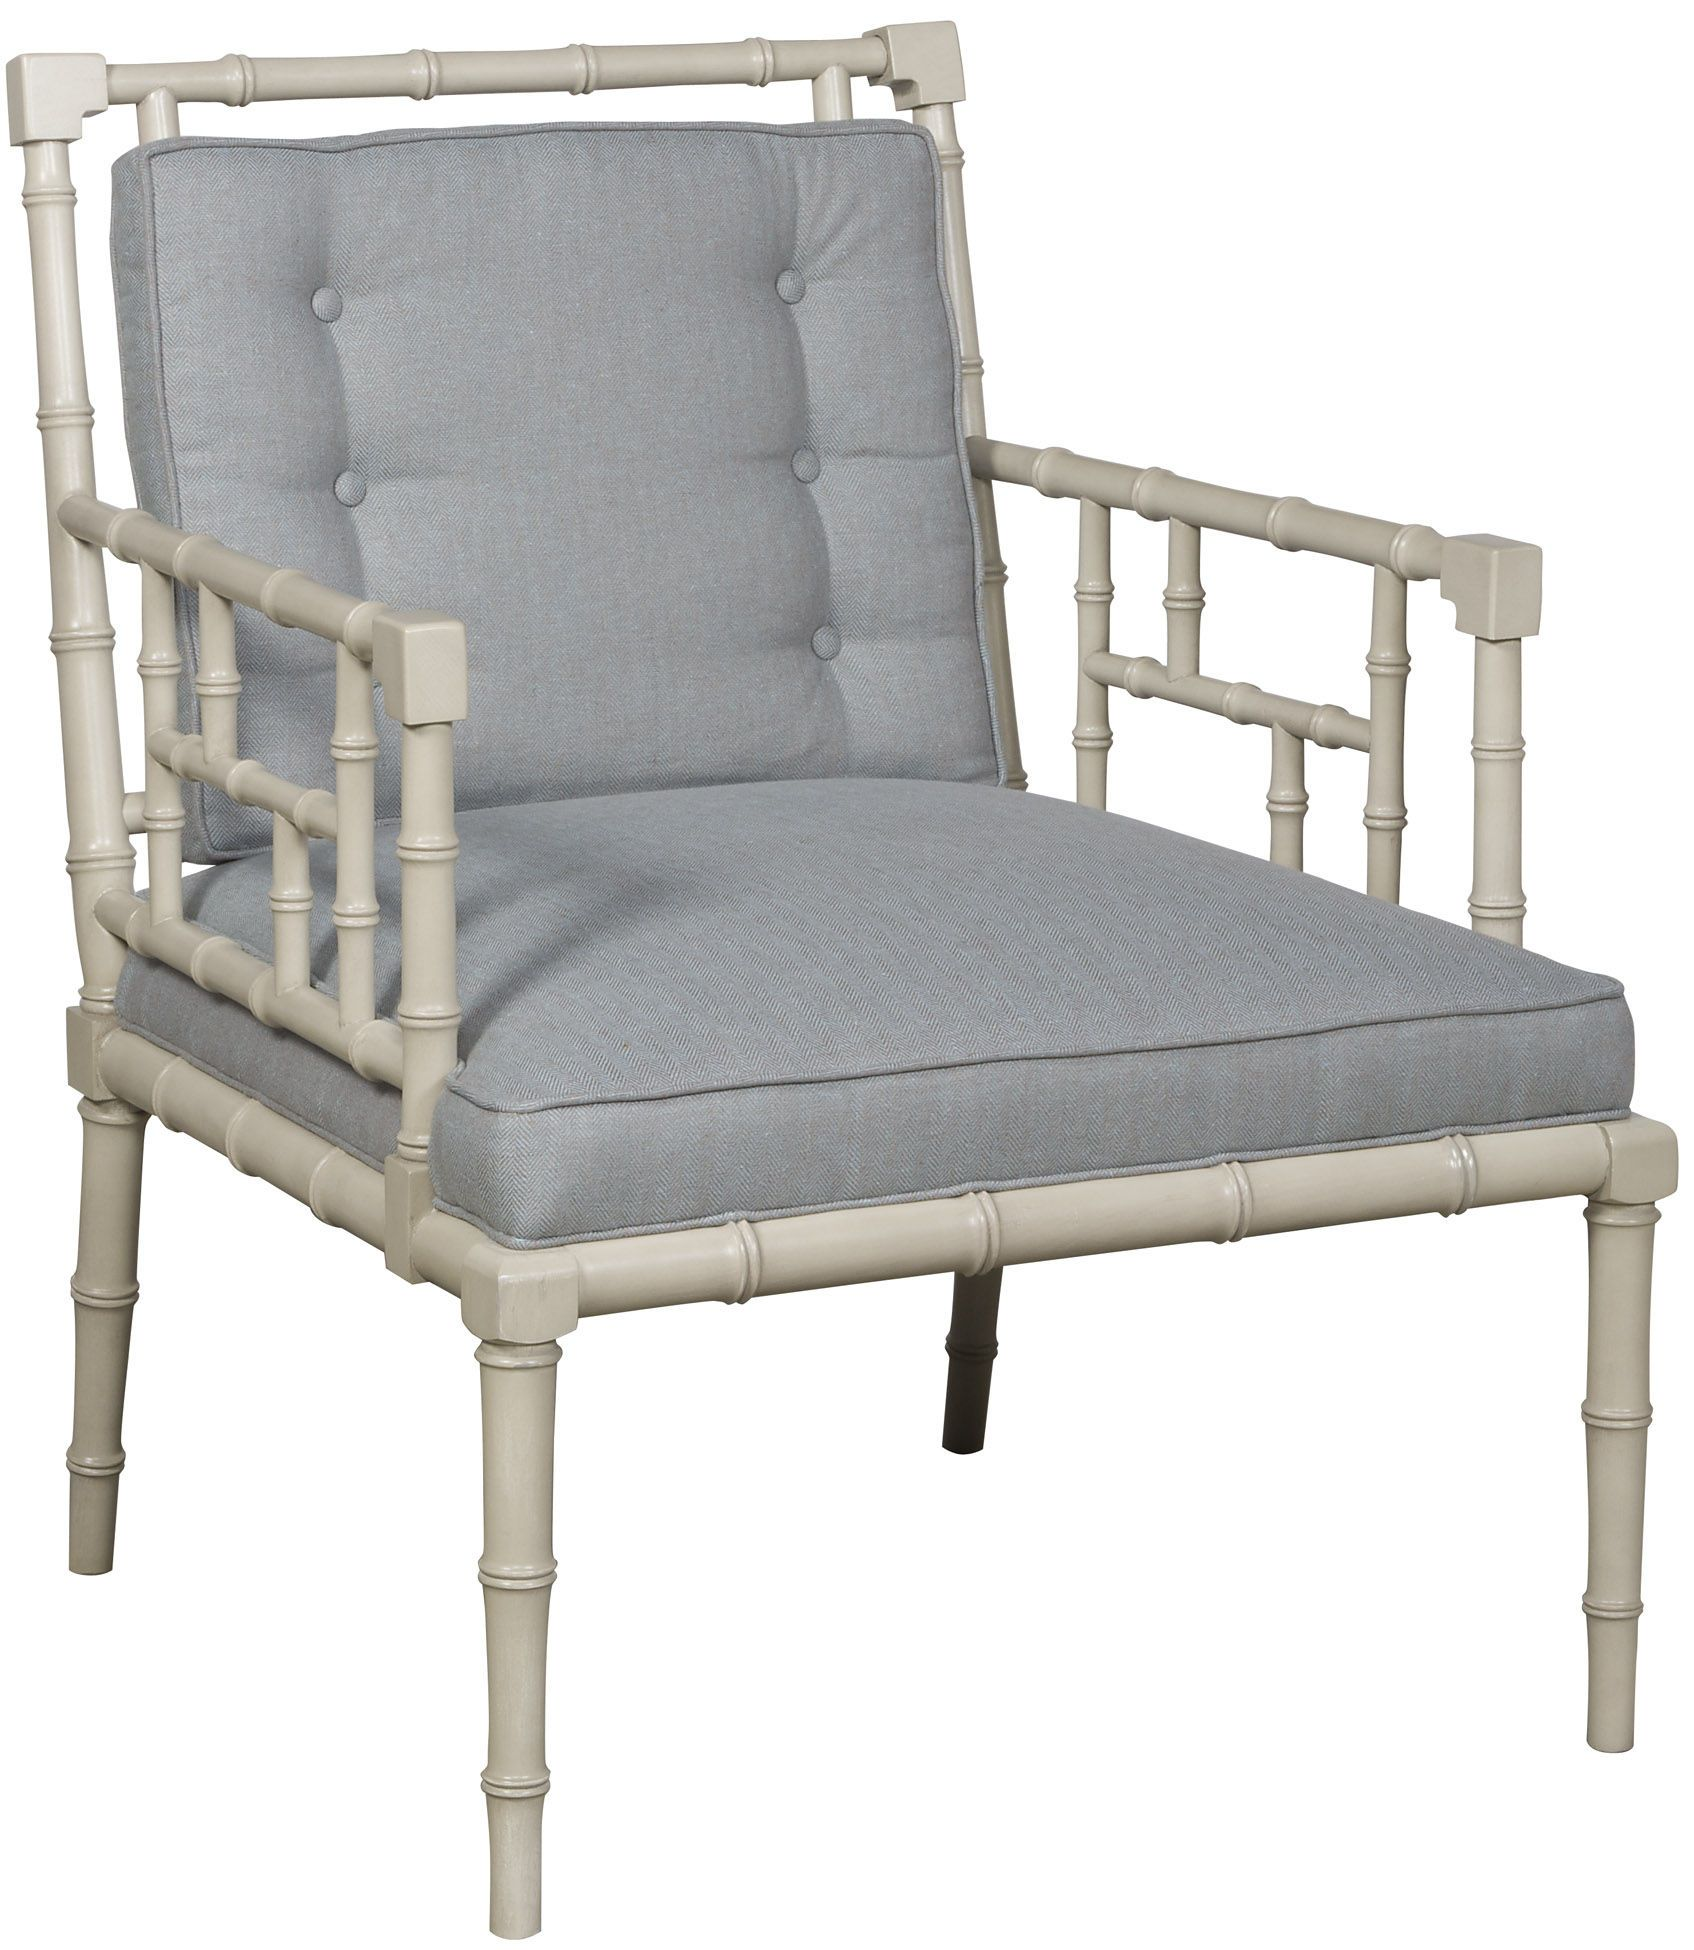 Shop For Vanguard Chair, And Other Living Room Chairs At Vanguard Furniture  In Conover, NC. Also Available In Leather And Fabric/Leather.